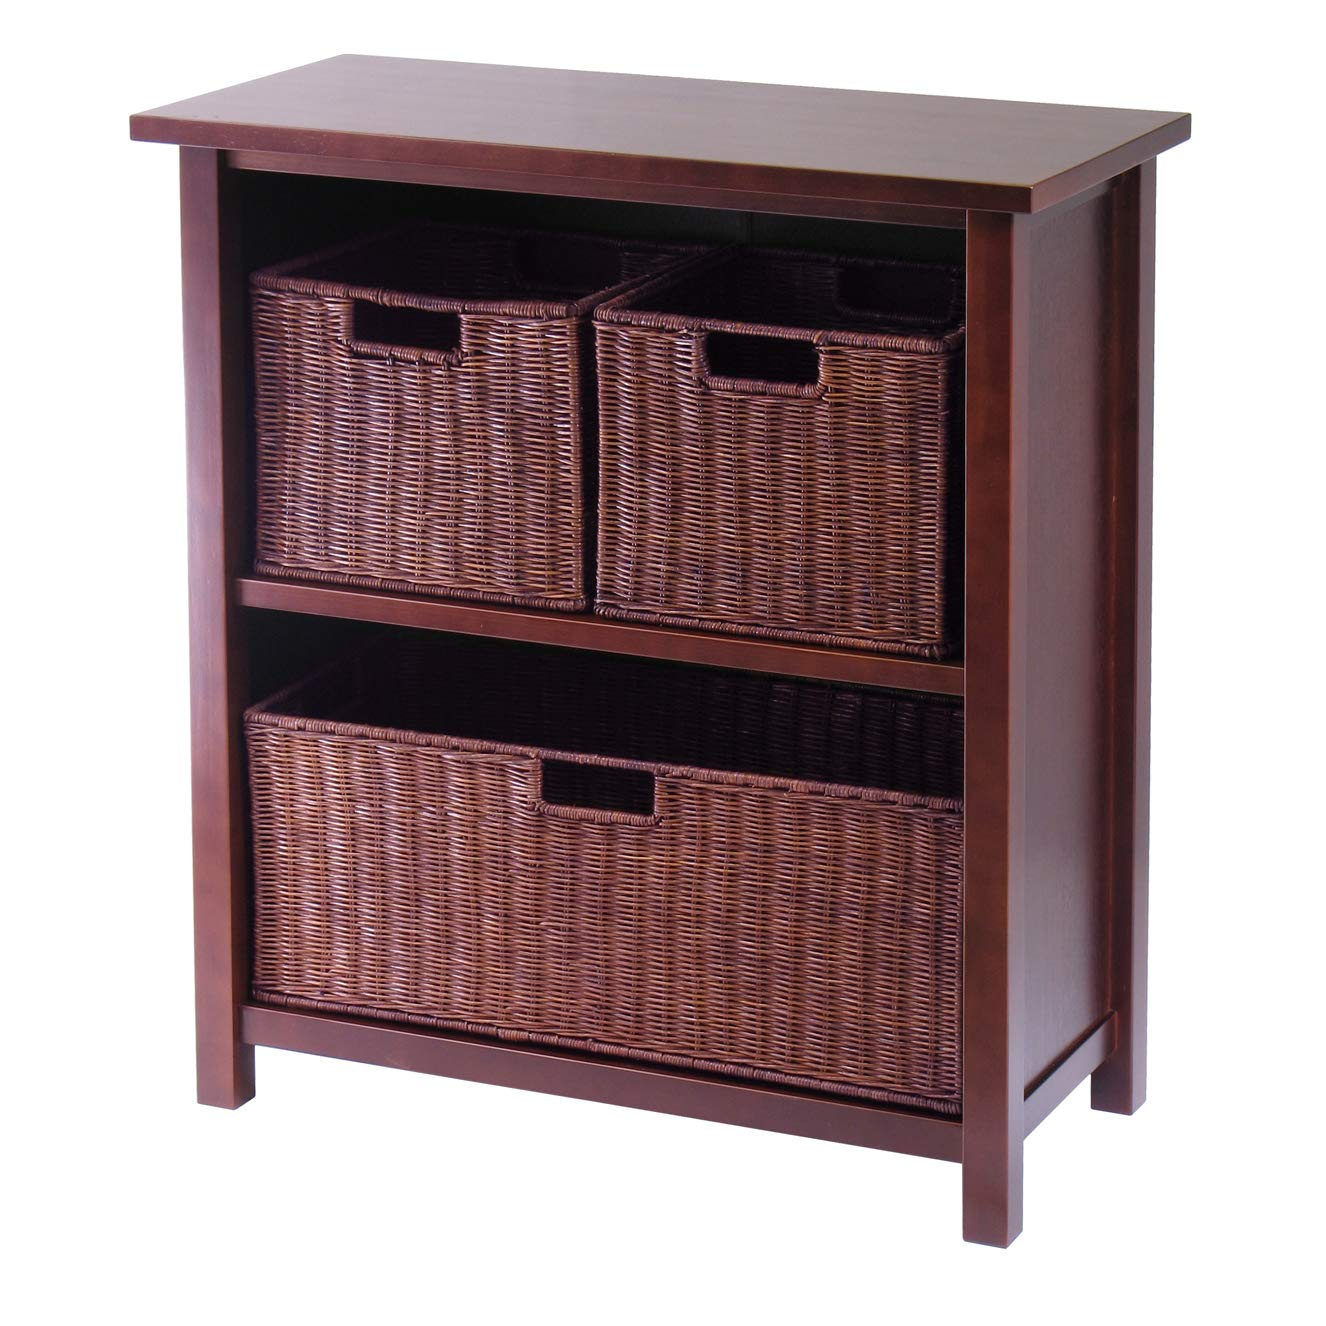 Etonnant Amazon.com: Winsome Wood Milan Wood 3 Tier Open Cabinet In Antique Walnut  Finish And 3 Rattan Baskets In Espresso Finish: Kitchen U0026 Dining